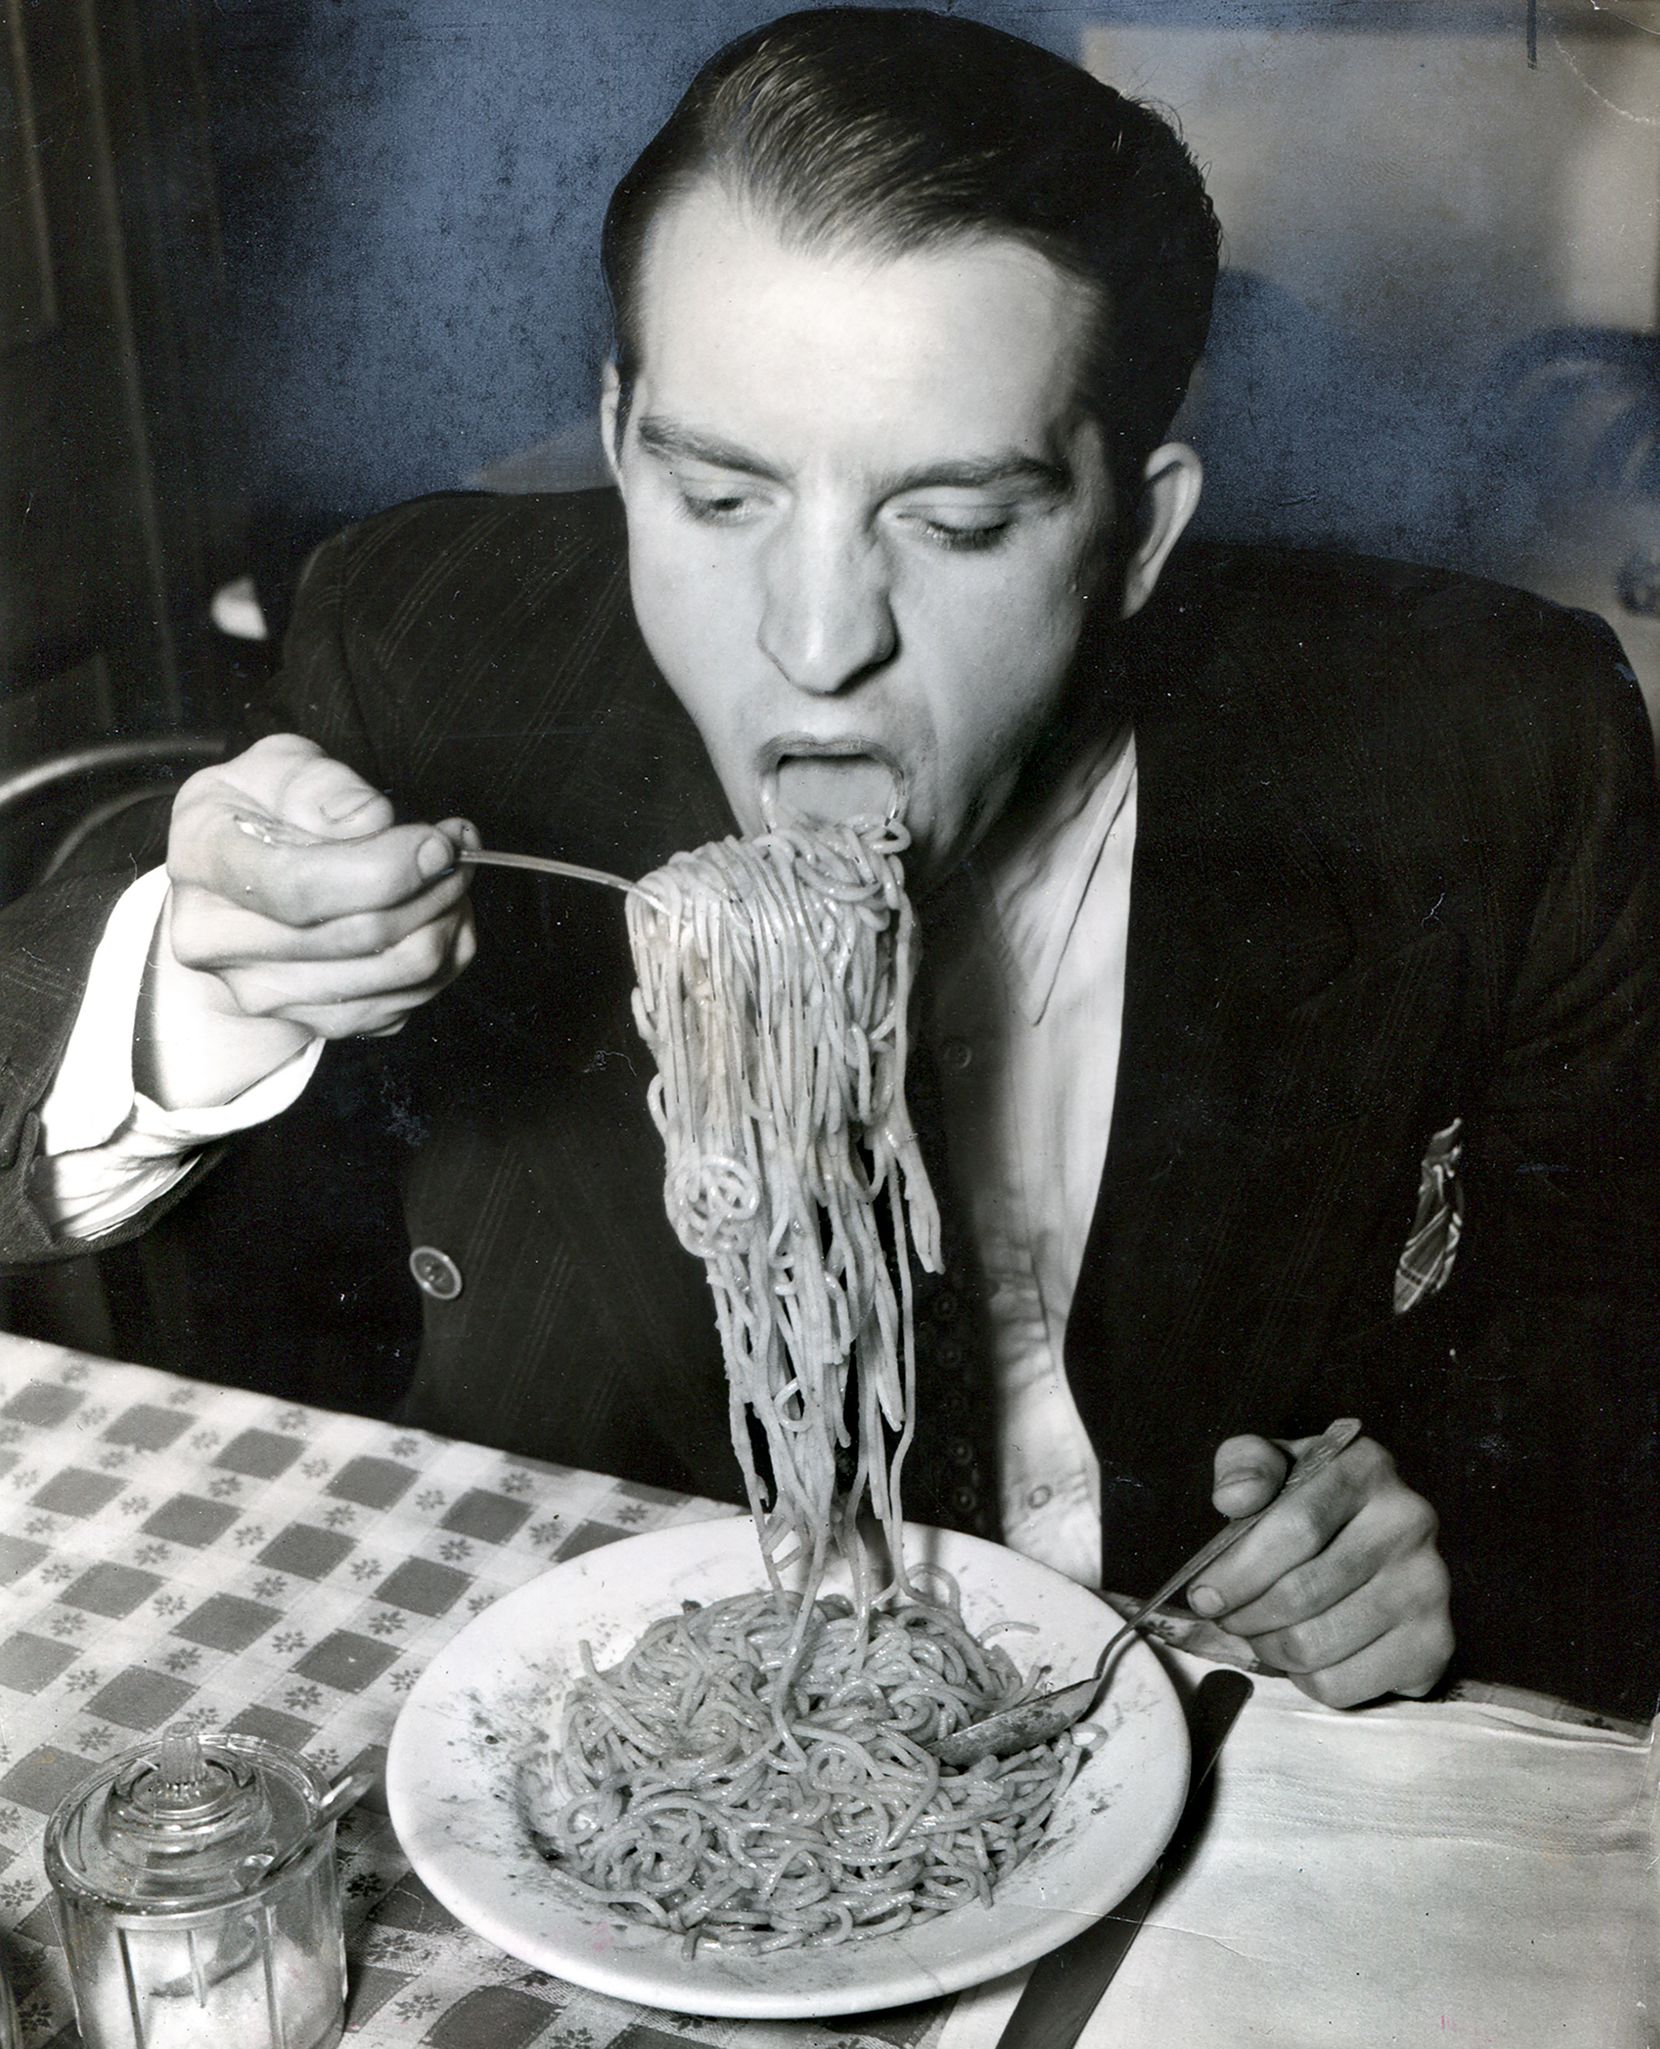 Weegee's 1940 image of Phillip J. Stazzone devouring his favorite food.